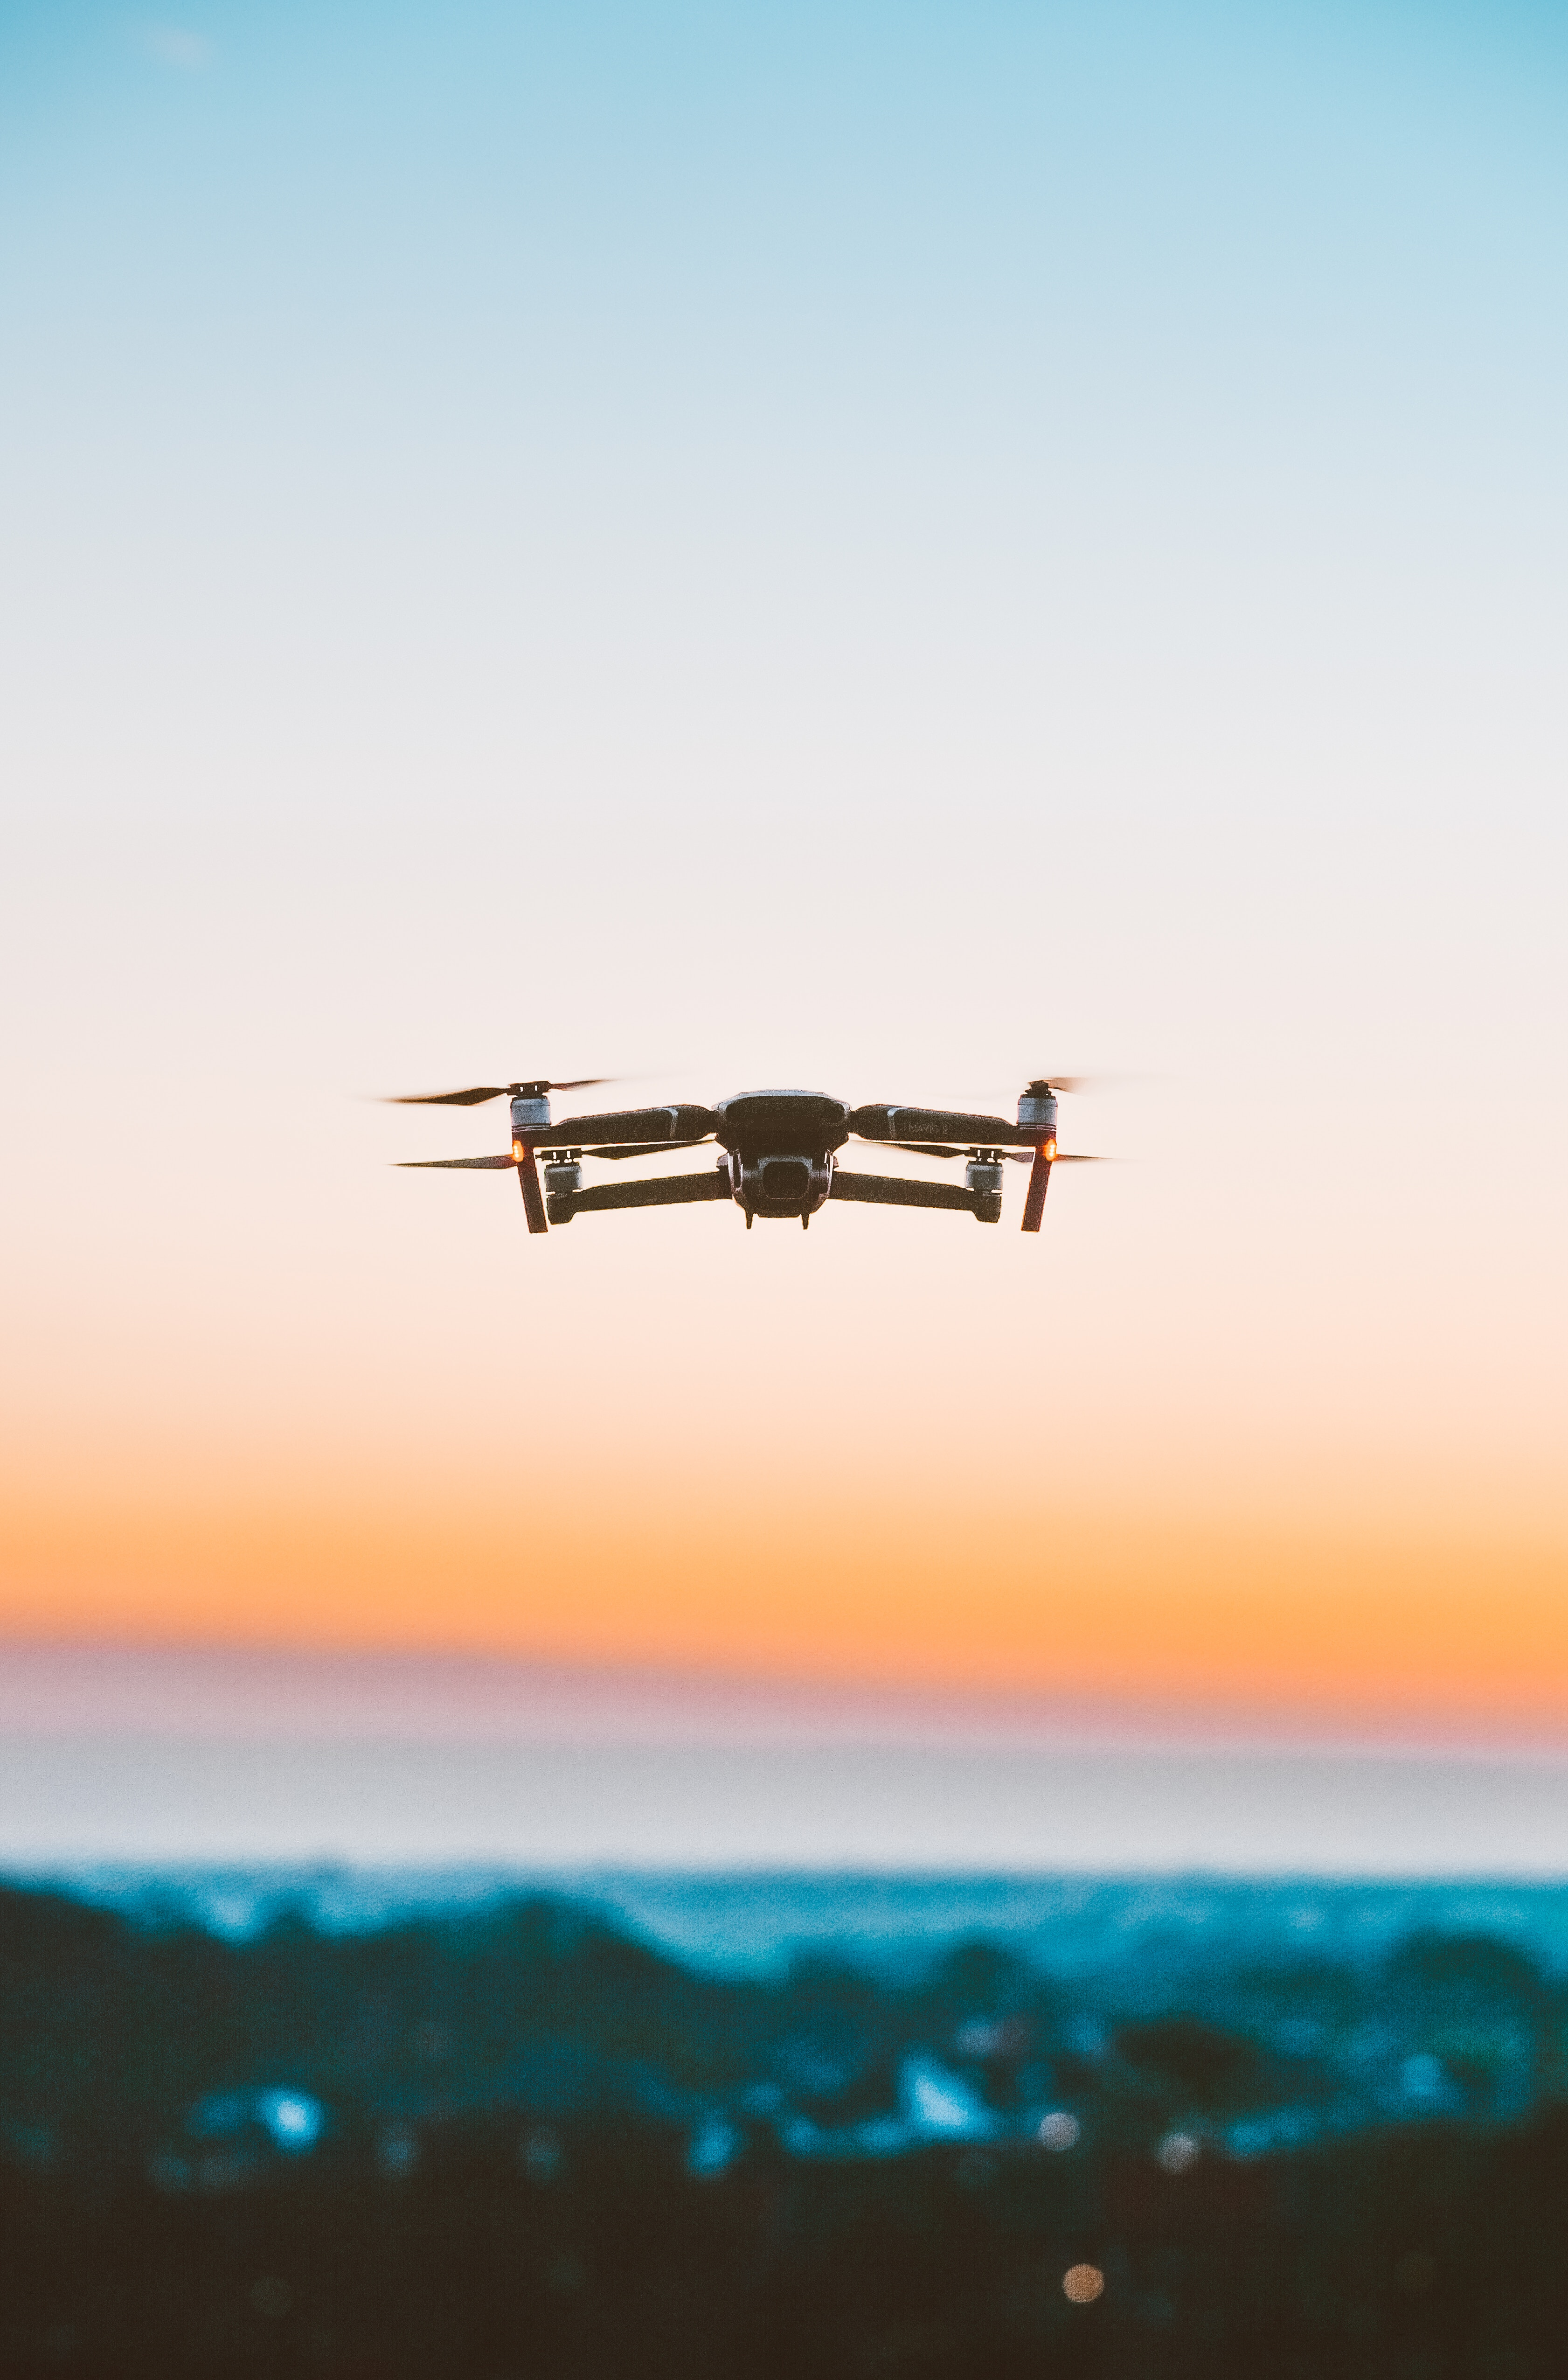 67230 download wallpaper Technologies, Technology, Quadcopter, Drone, Flight screensavers and pictures for free